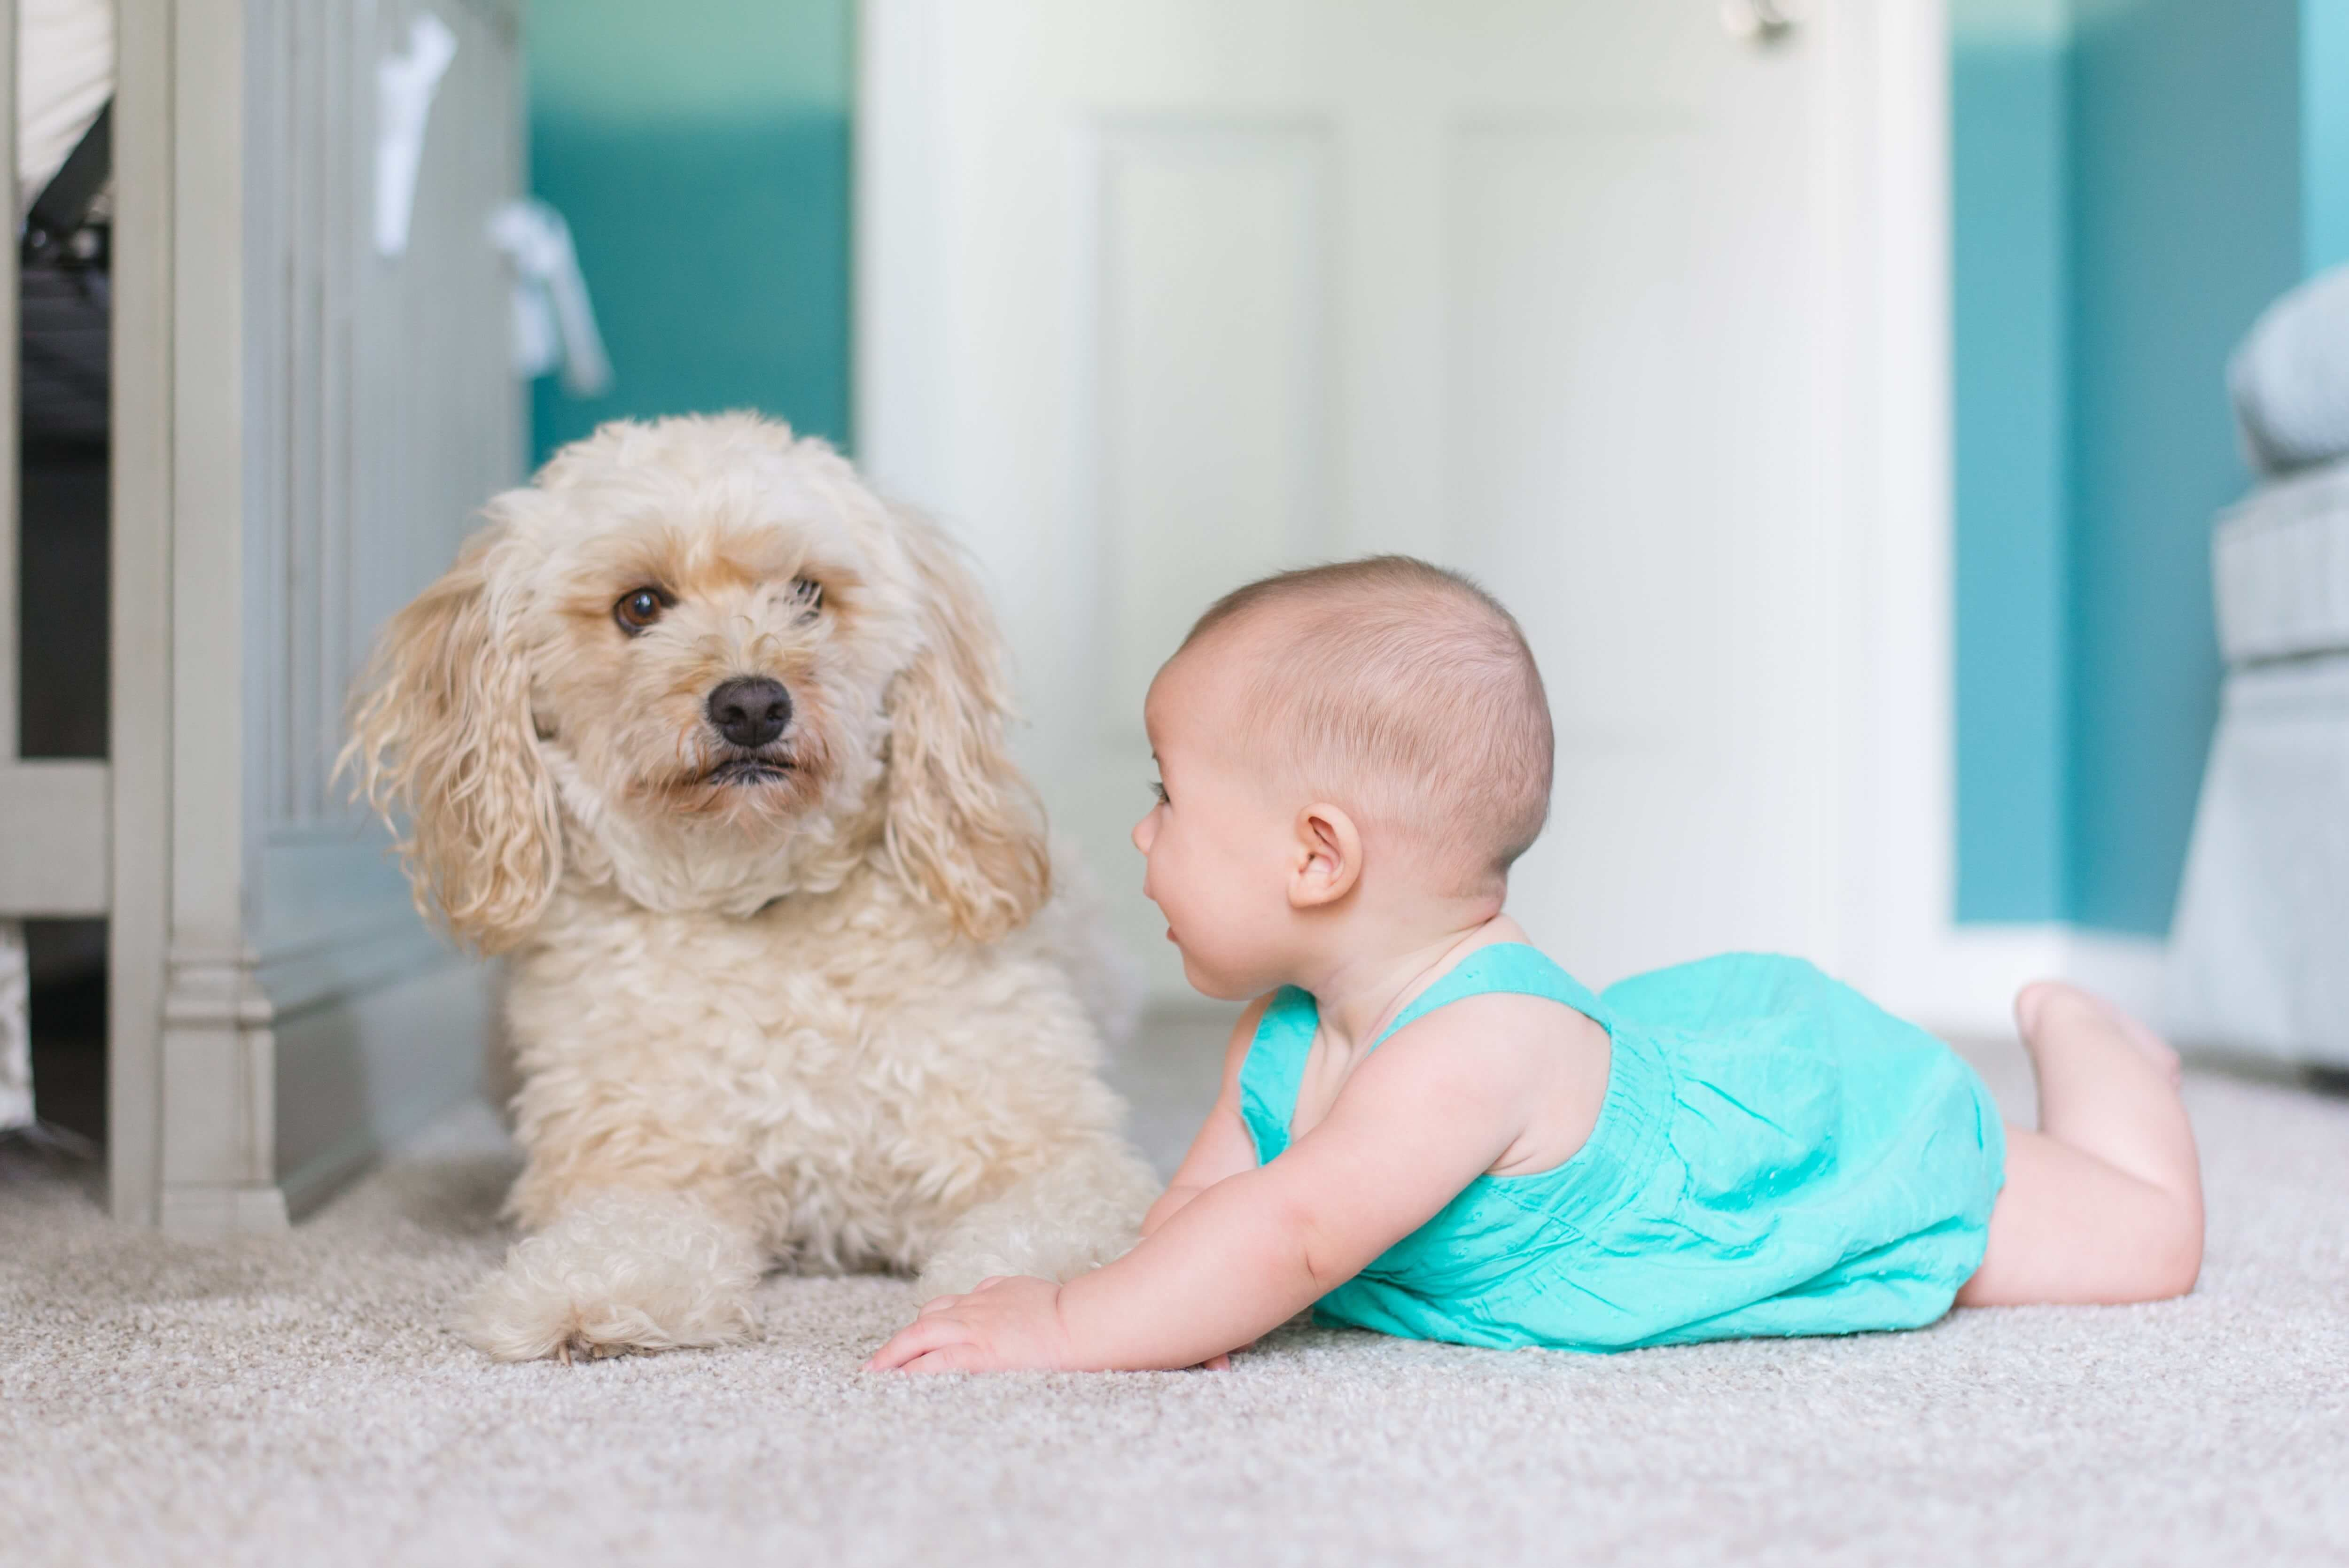 A happy baby playing with her dog on a freshly cleaned carpet in Yelm, WA